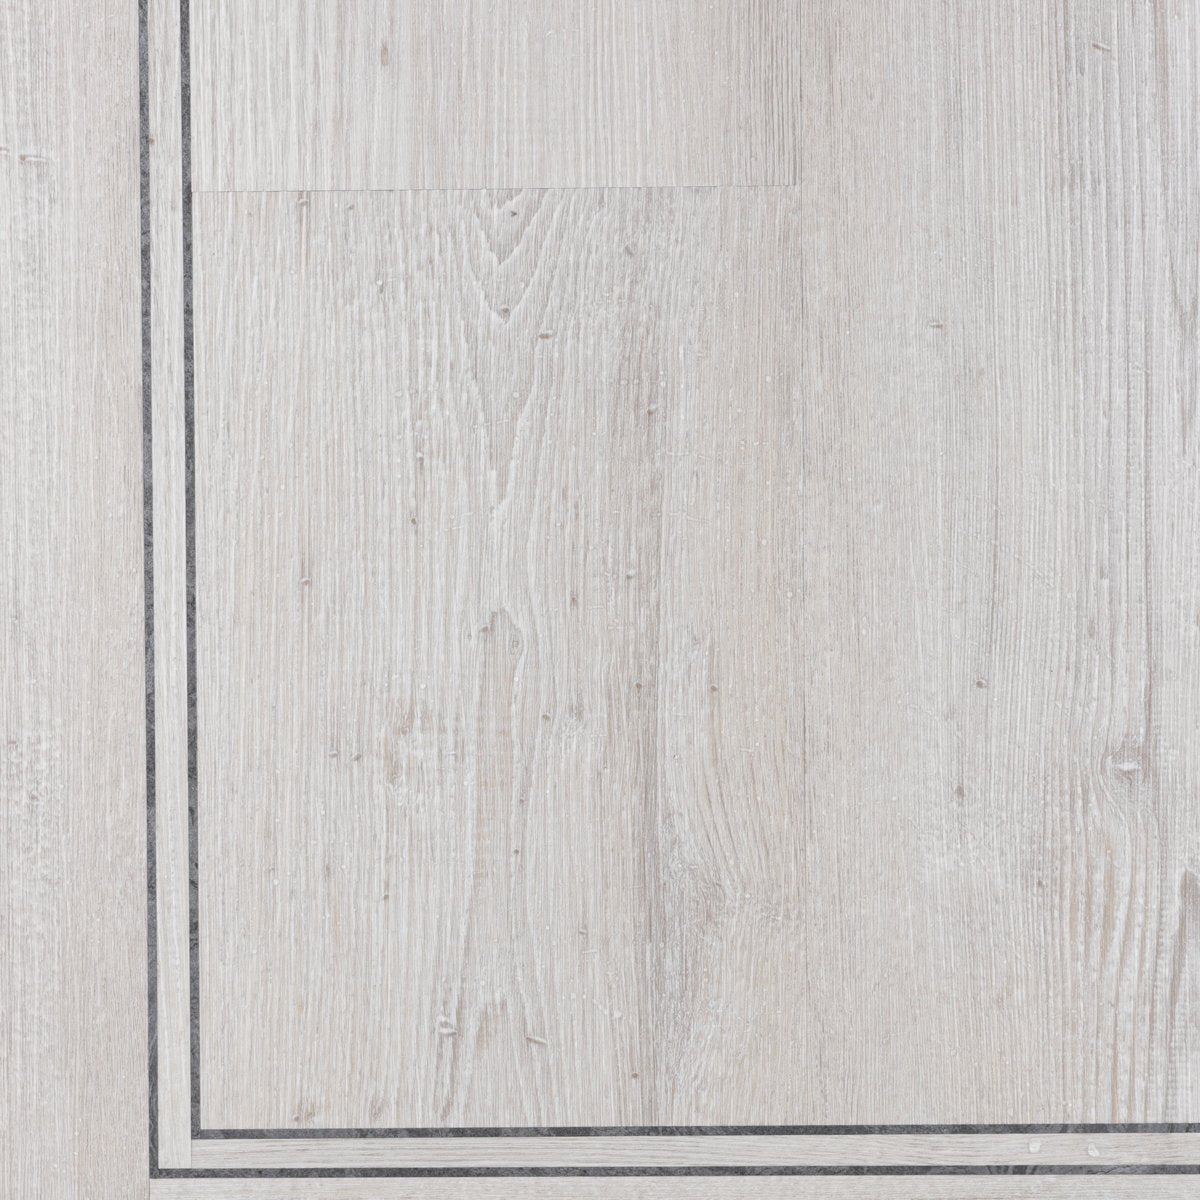 Noric White Oak - Direct Flooring & Beds